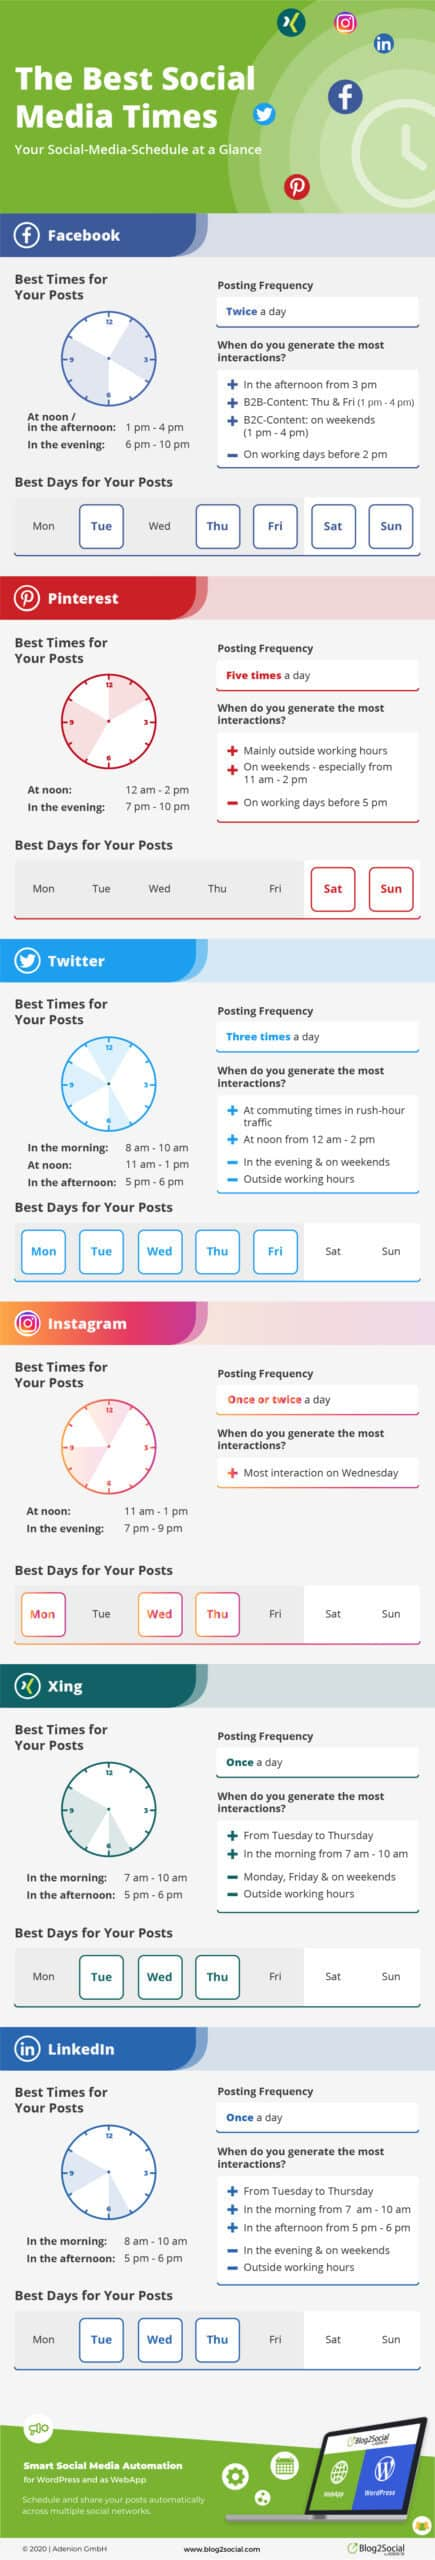 Best times for social media posts